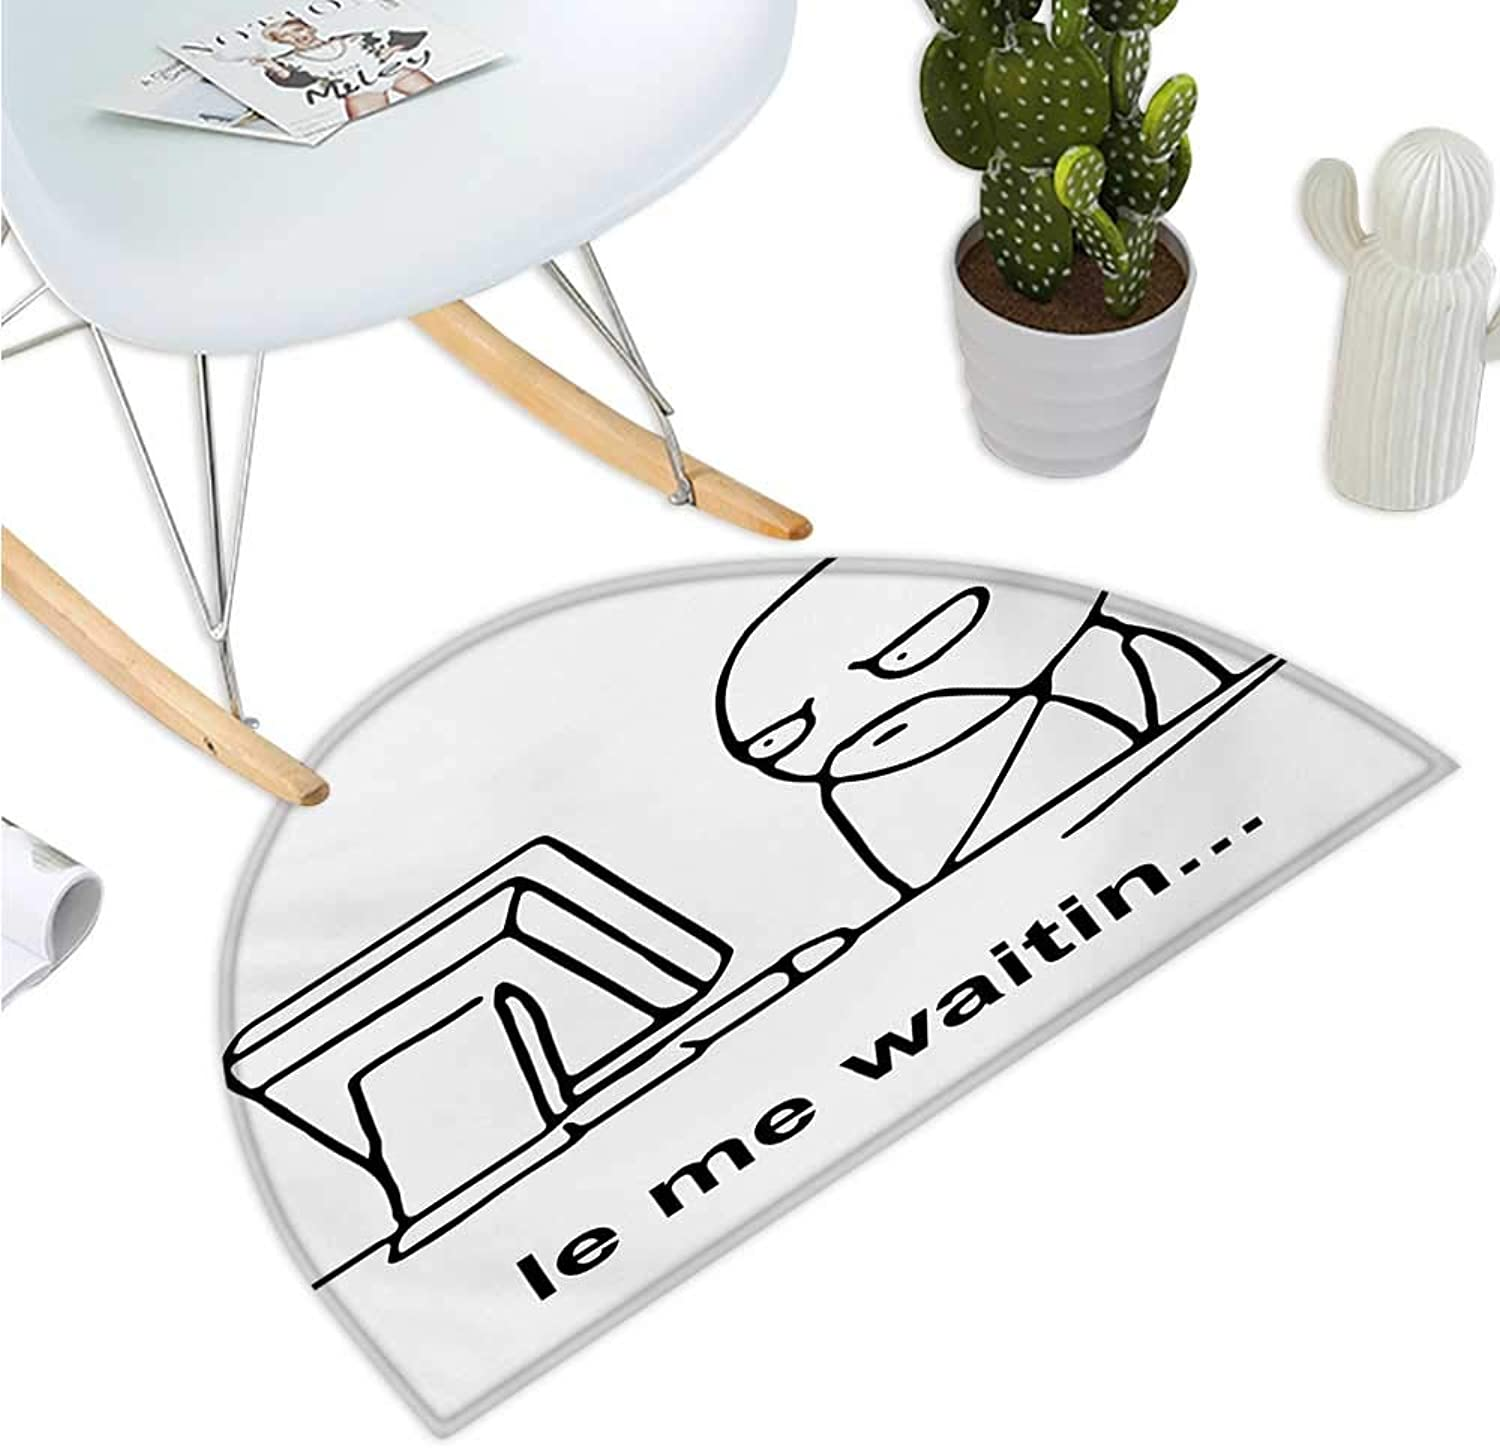 Humor Semicircle Doormat Stickman Meme Face Icon Looking at Computer Joyful Fun Caricature Comic Design Entry Door Mat H 35.4  xD 53.1  Black and White